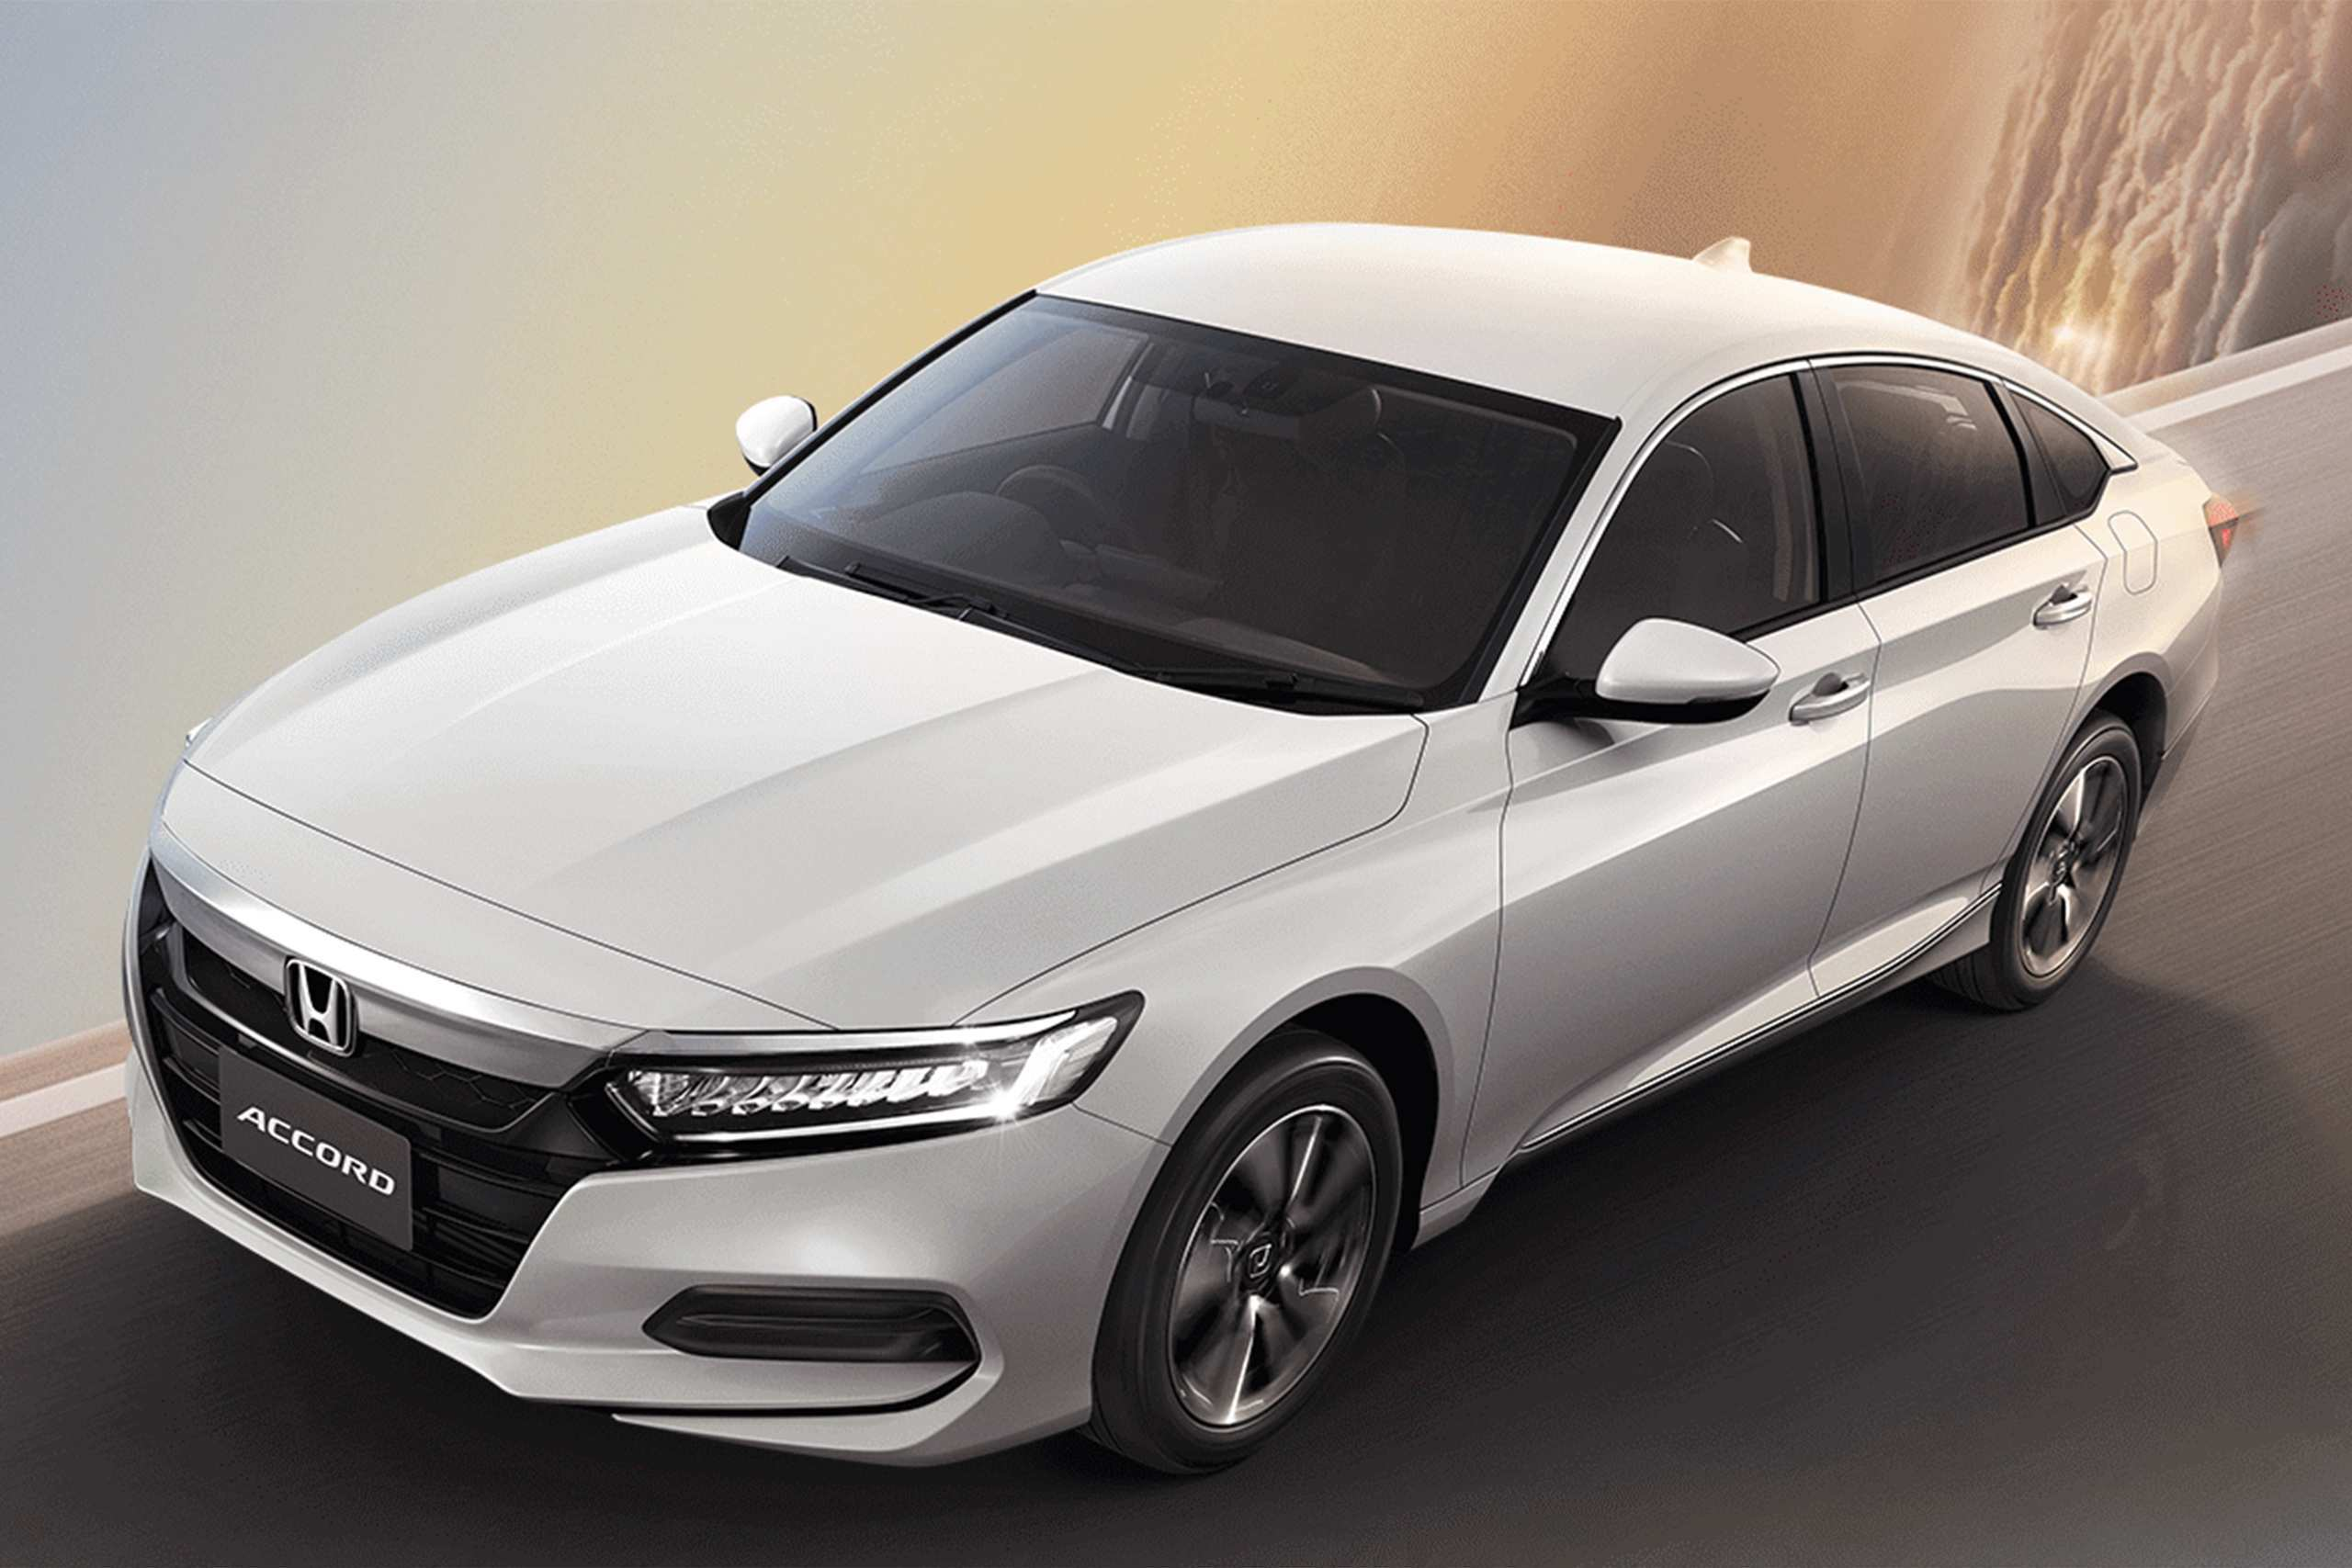 83 New 2019 Honda Accord Spesification